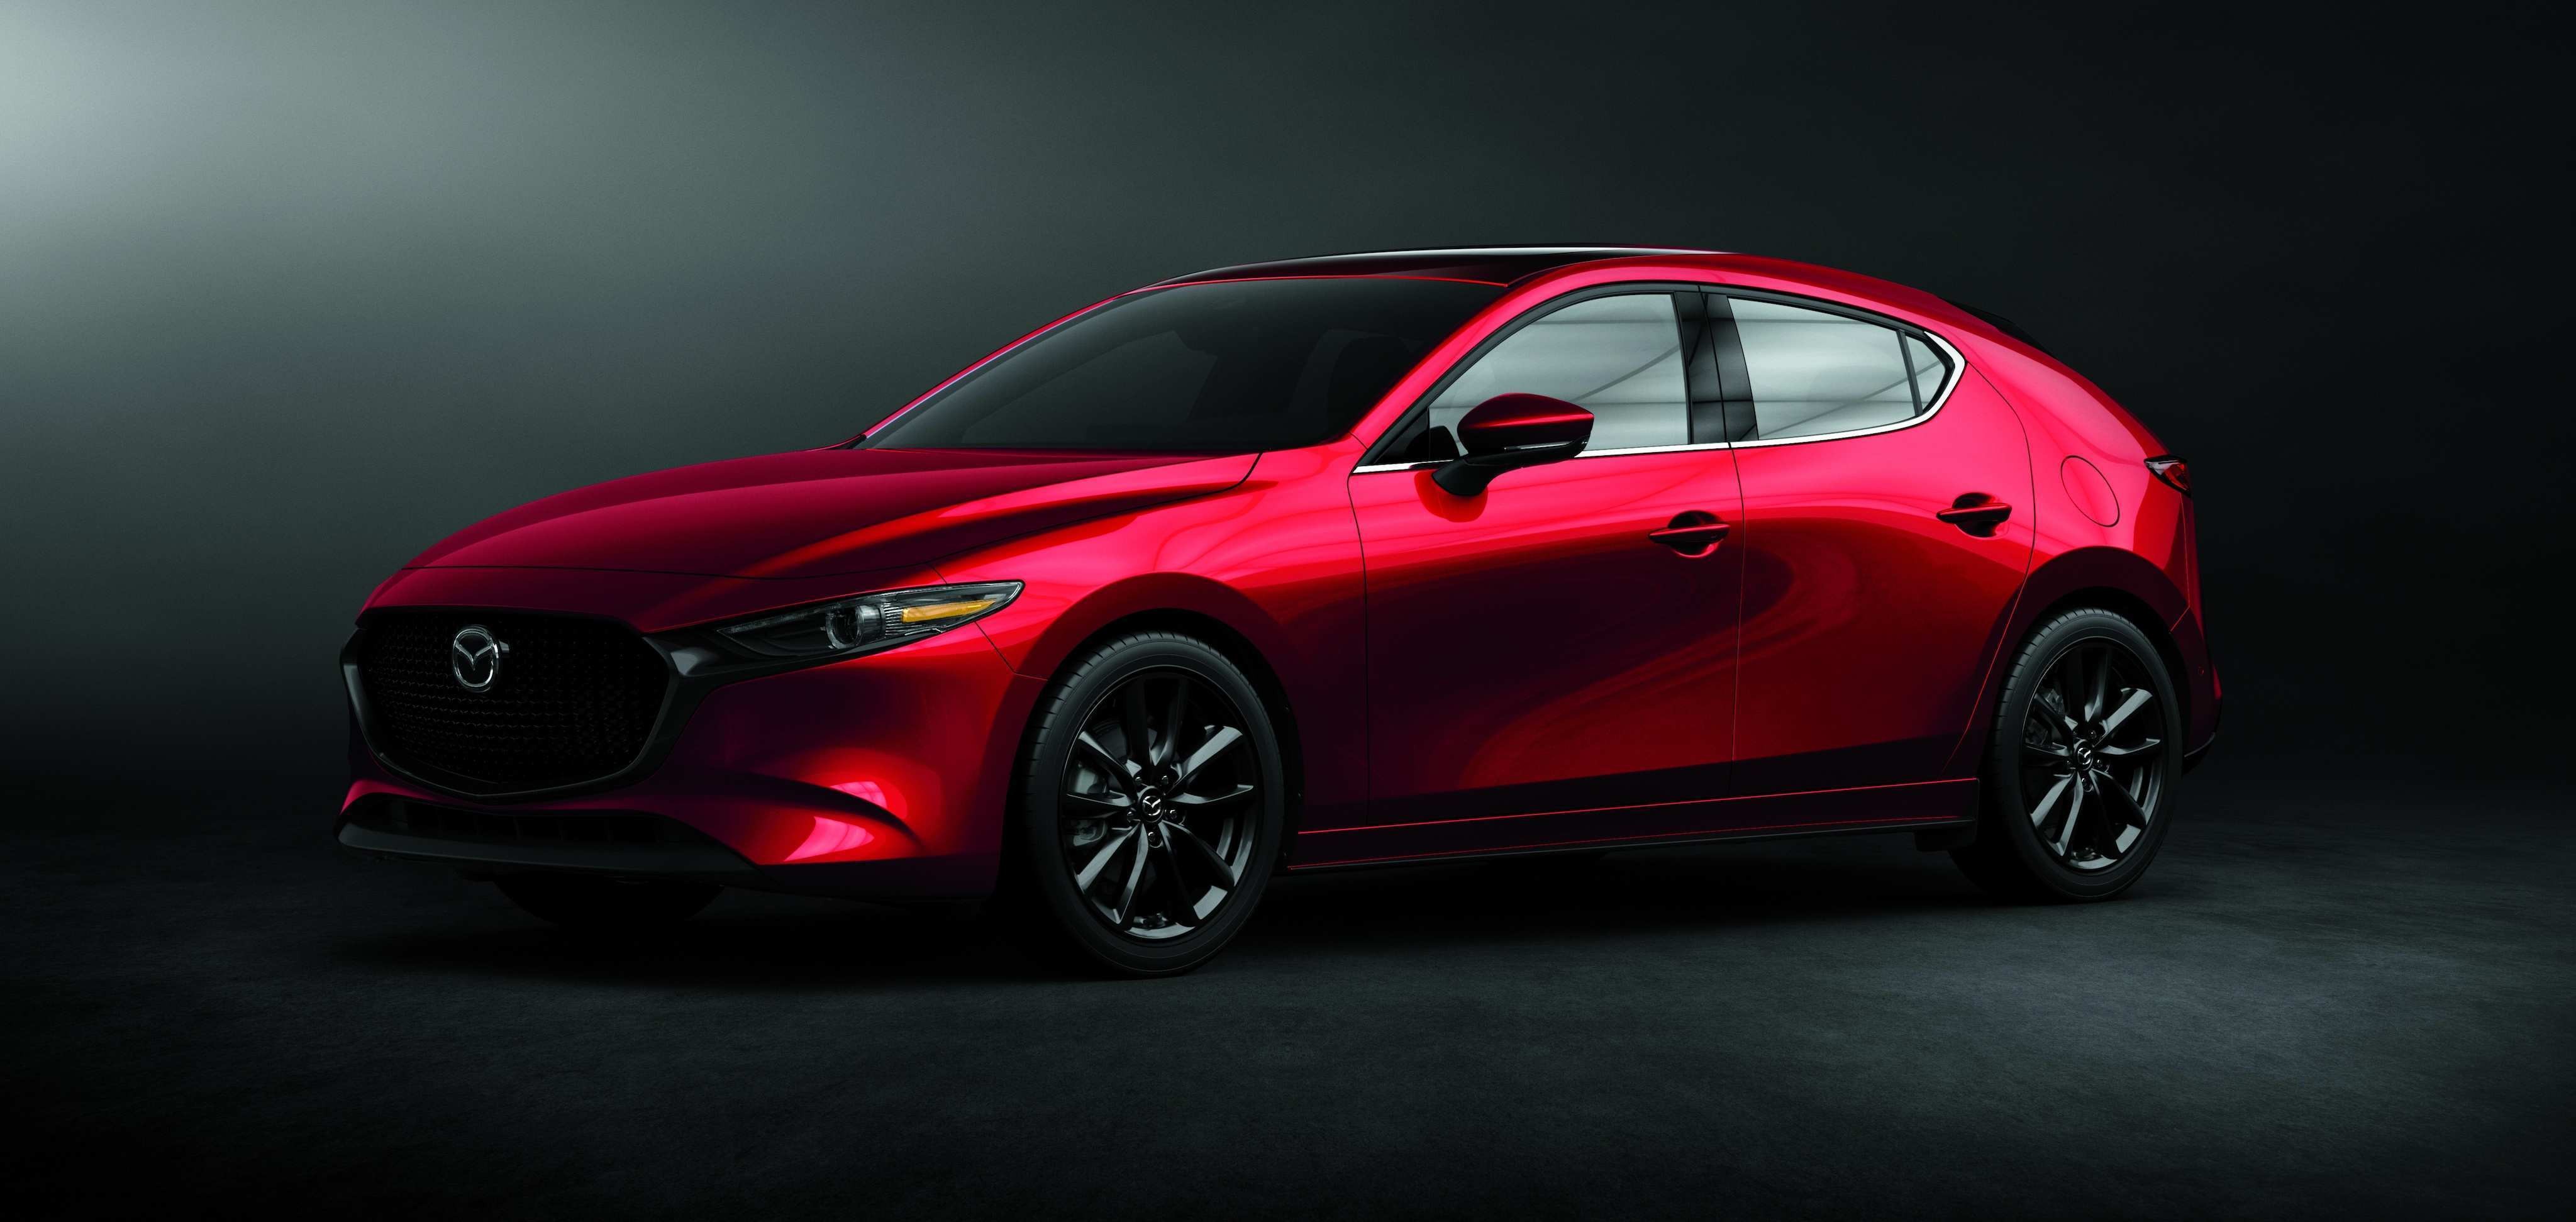 91 The Best 2019 Mazda Lineup Redesign And Review